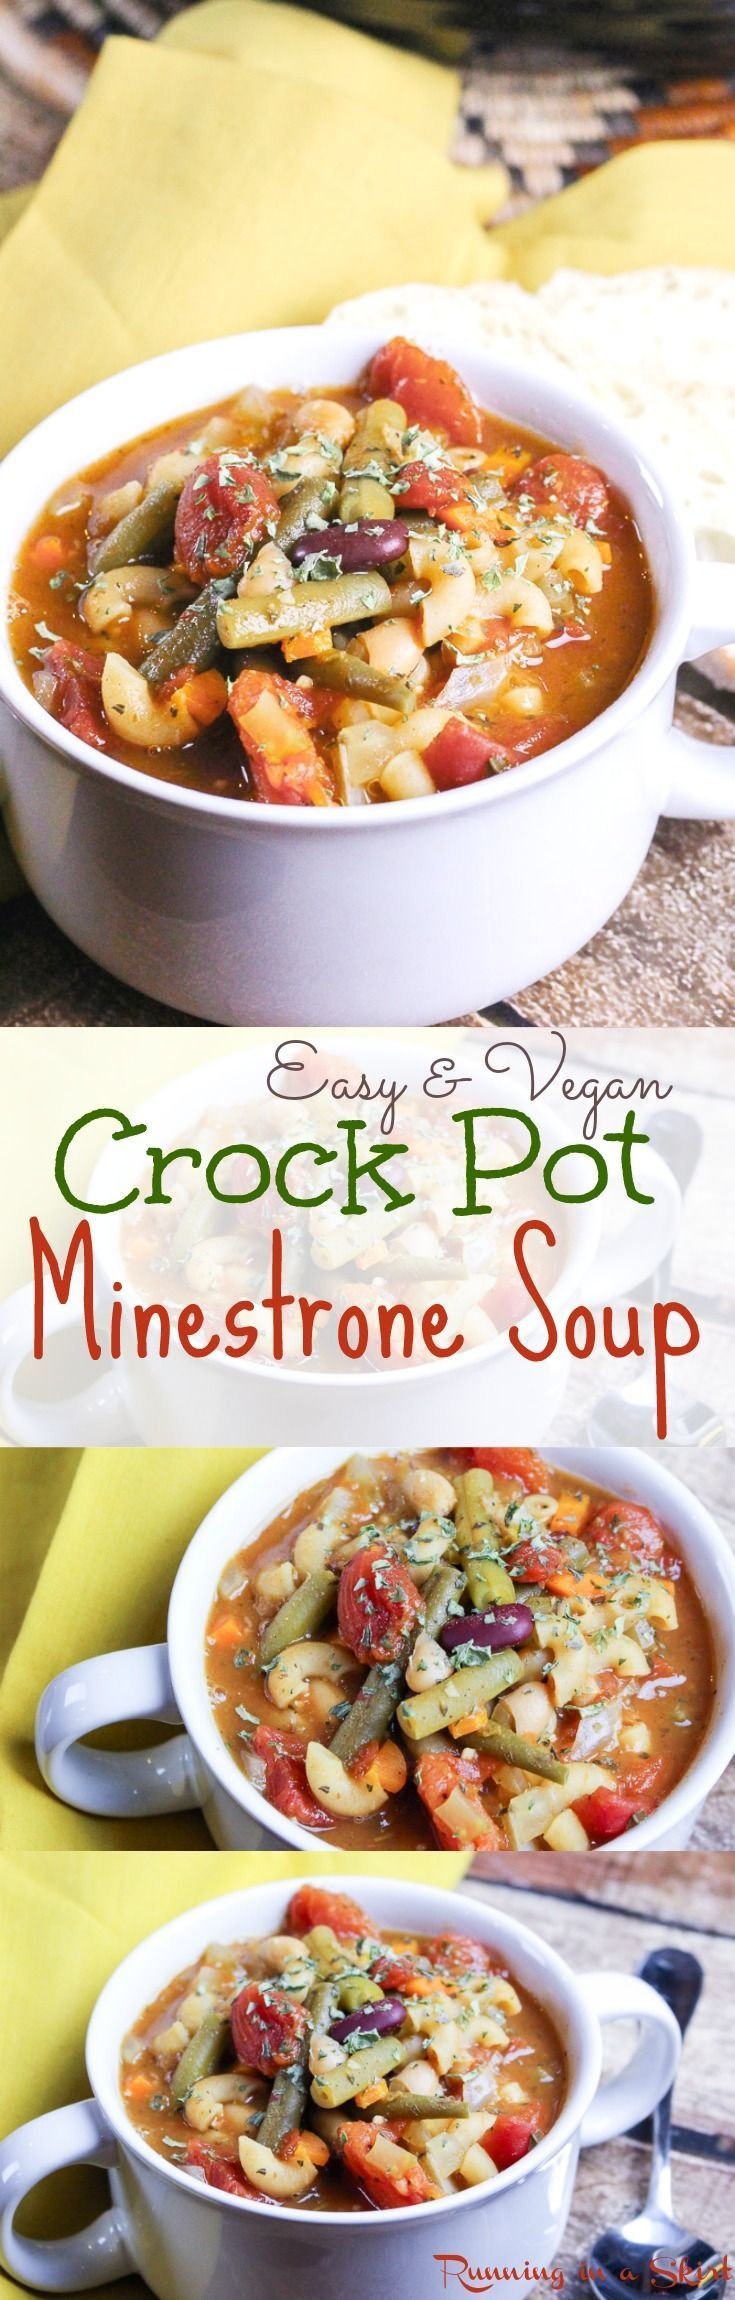 17 best images about soup recipes on pinterest easy for Crock pot vegetarian recipes healthy